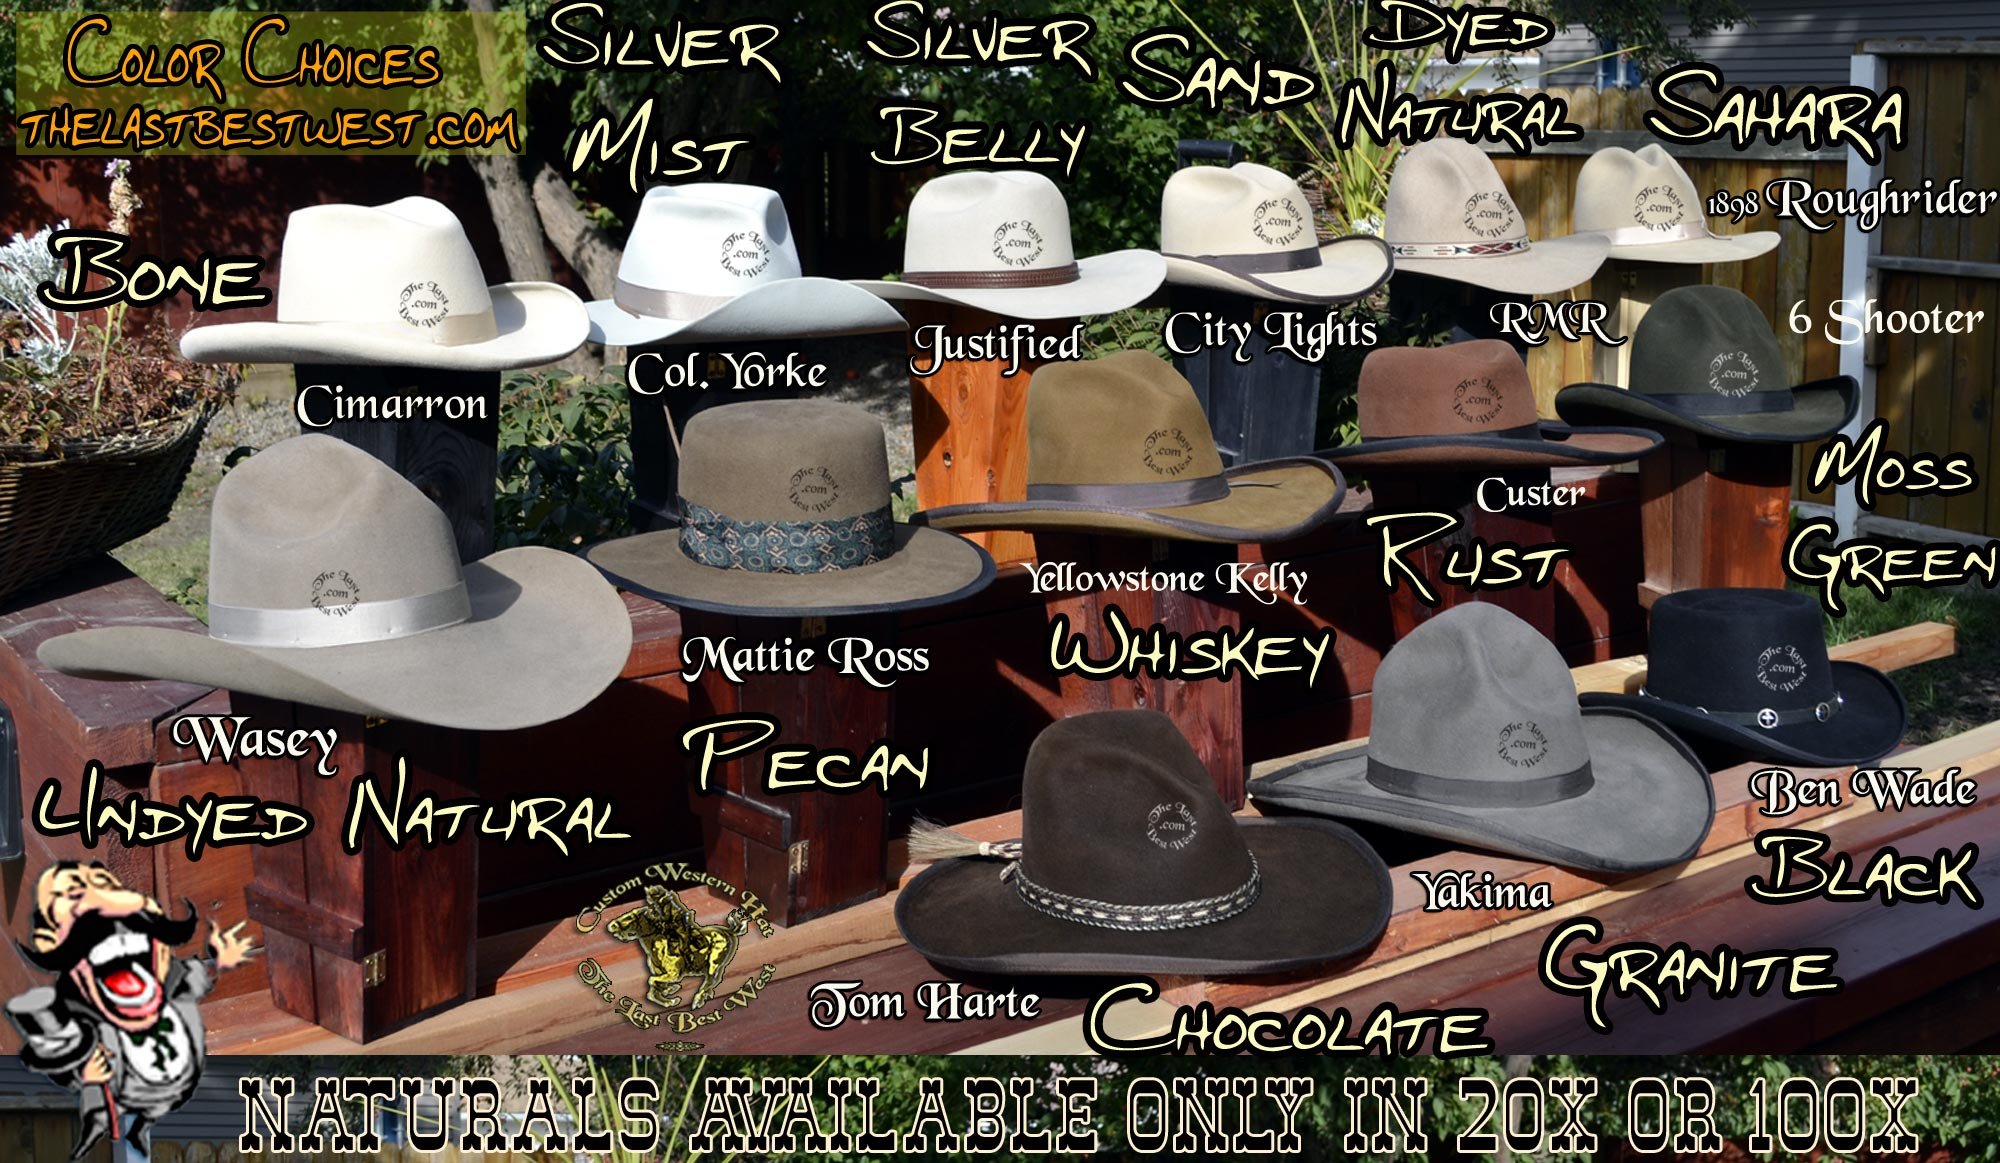 9099bddb3 Cowboy Hat Colors - The Last Best West